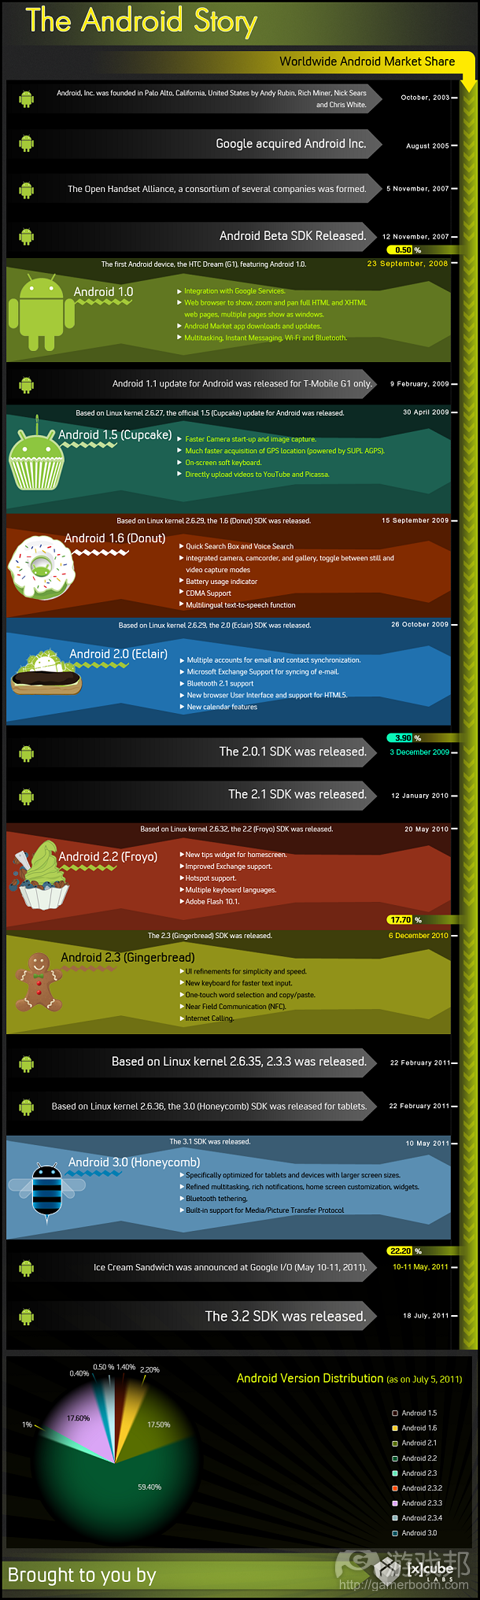 android-infograph(from intomobile)